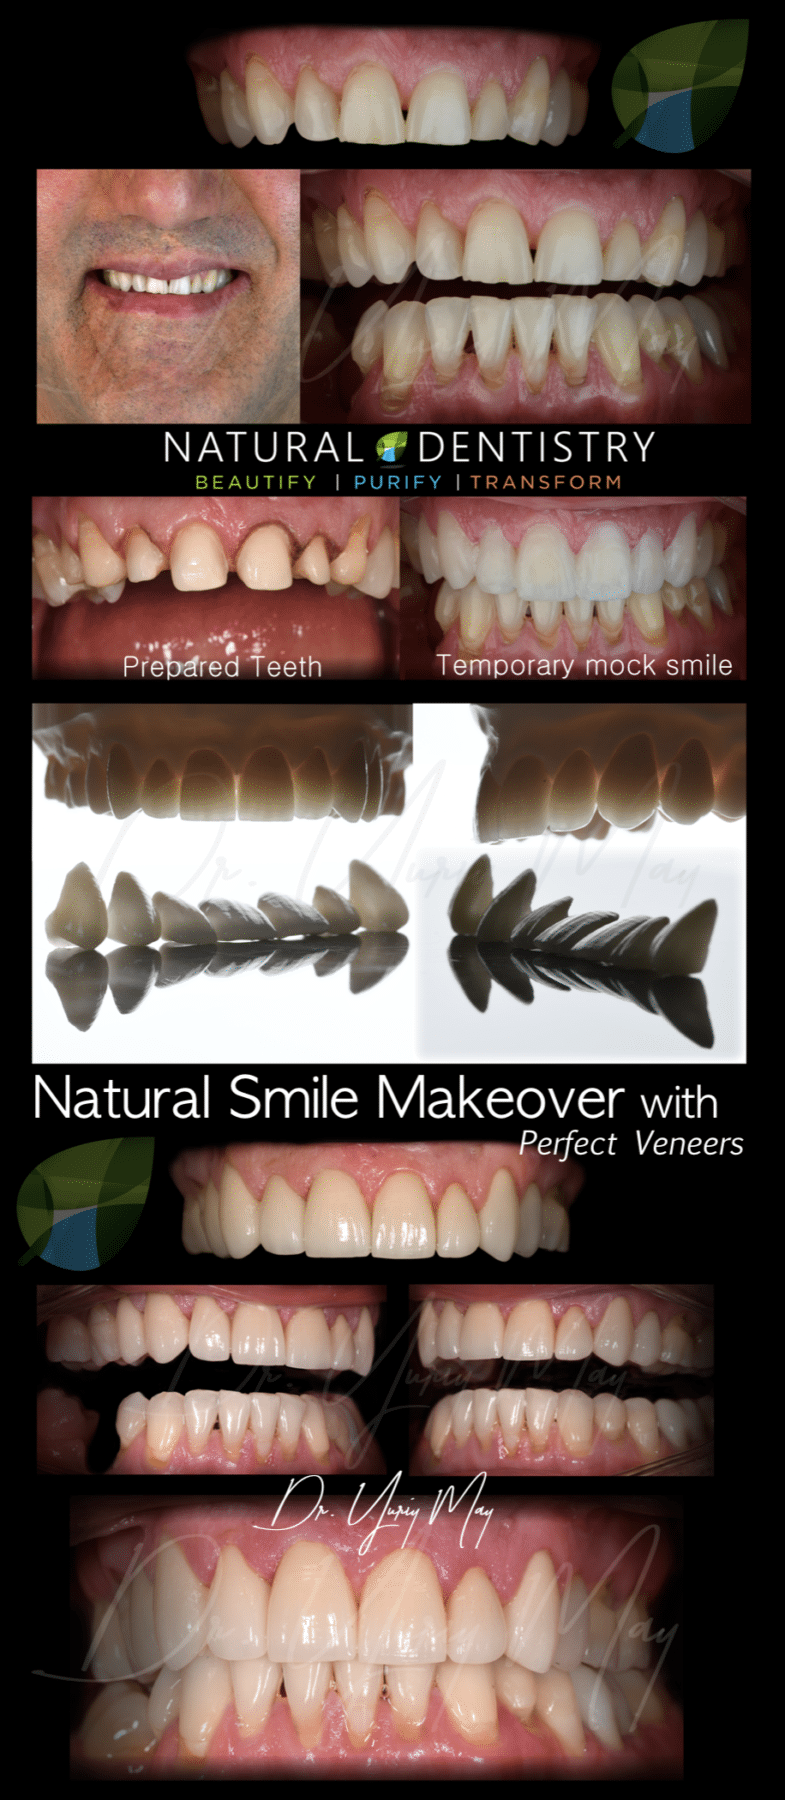 Dental Porcelain Veneers Celebrity Smile Makeover Best Cosmetic Dentist CT NY NJ MA RI Dr. Yuriy May | Veneers